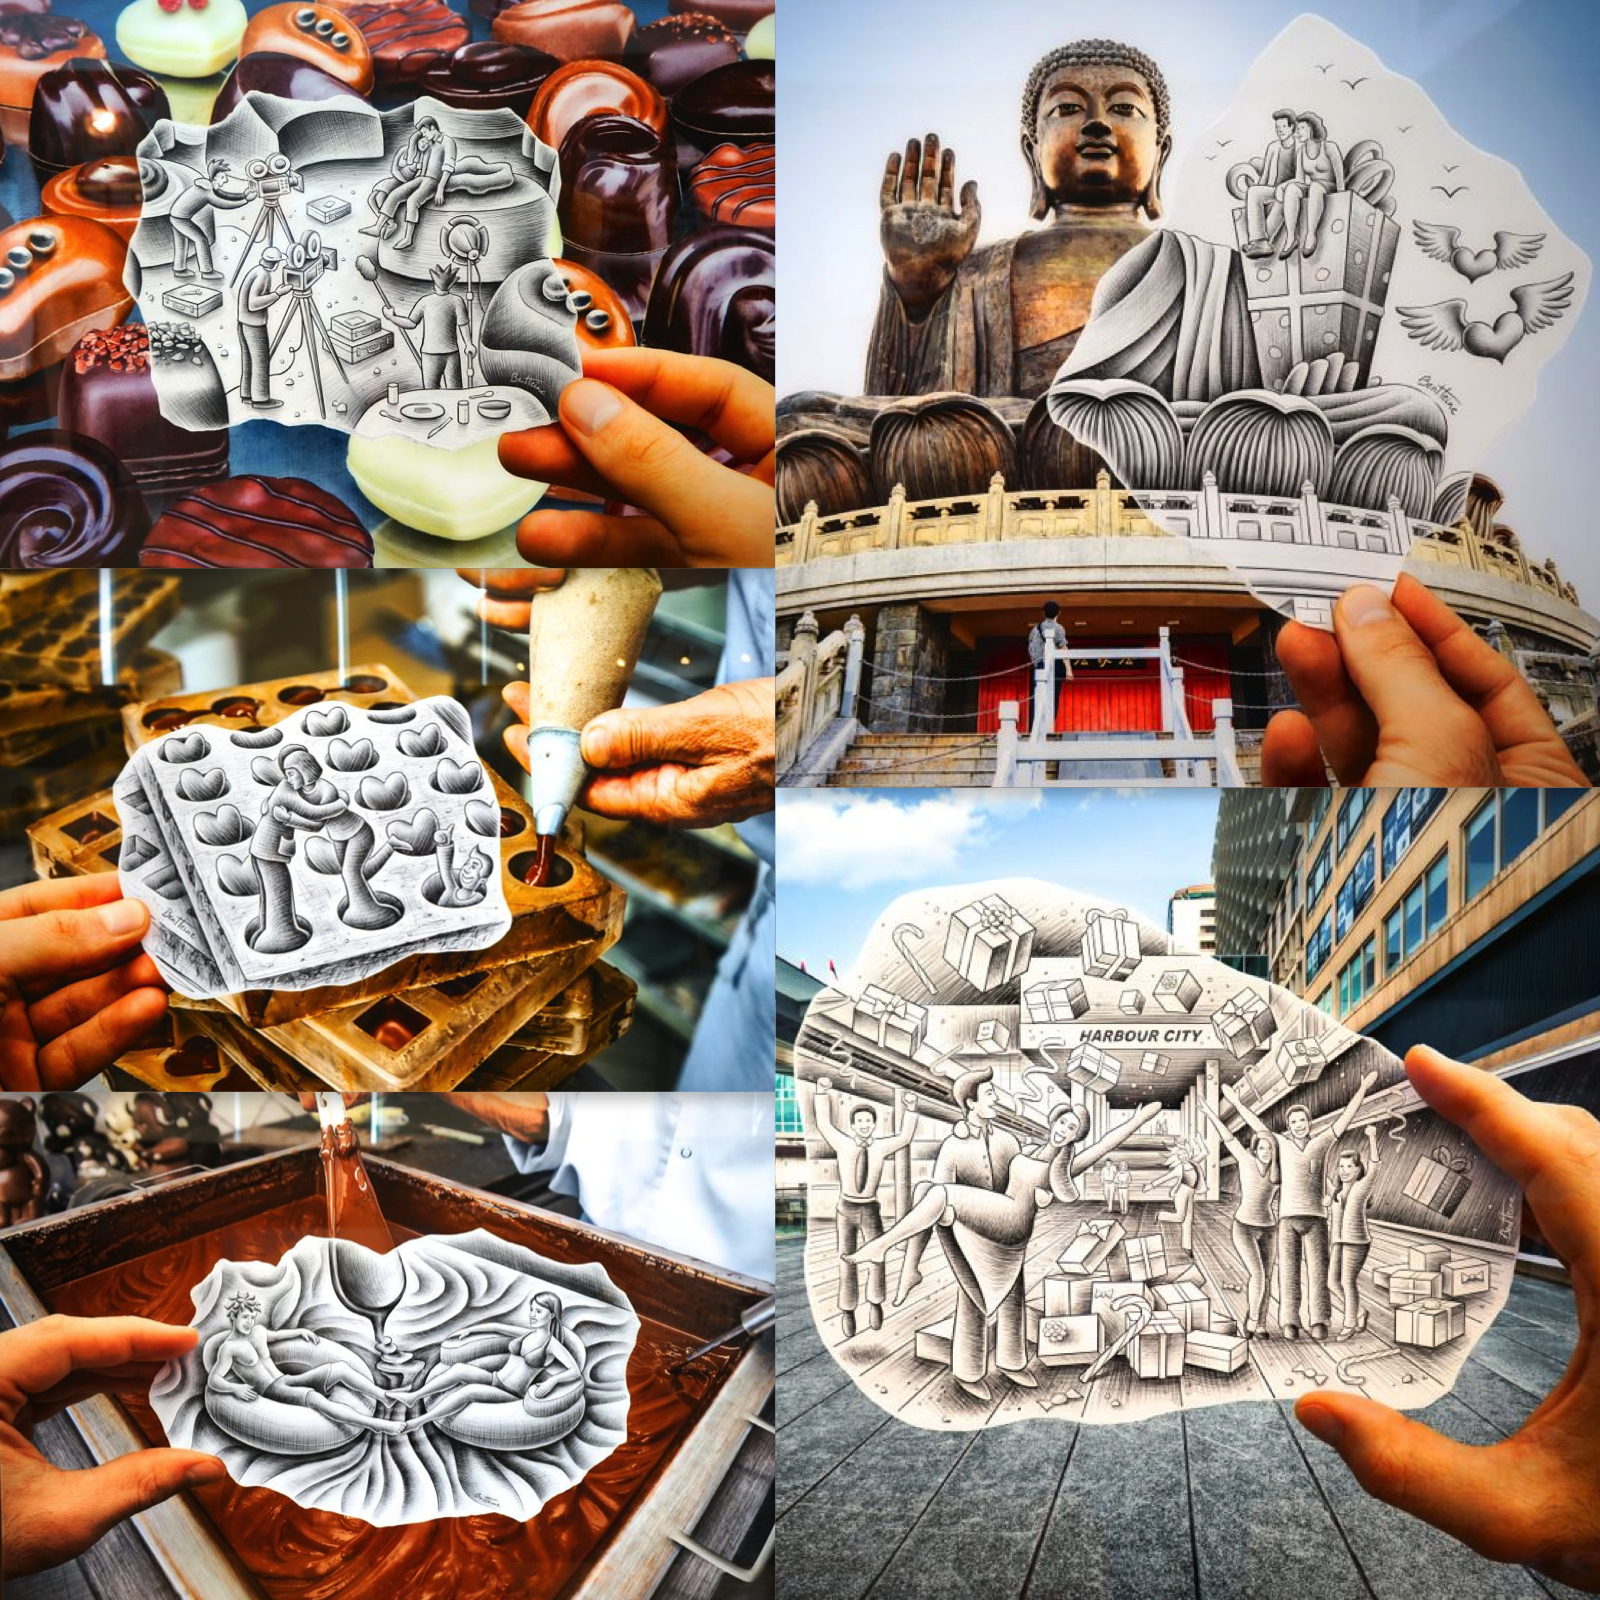 Ben Heine Presents From Cocoa To Choco Art